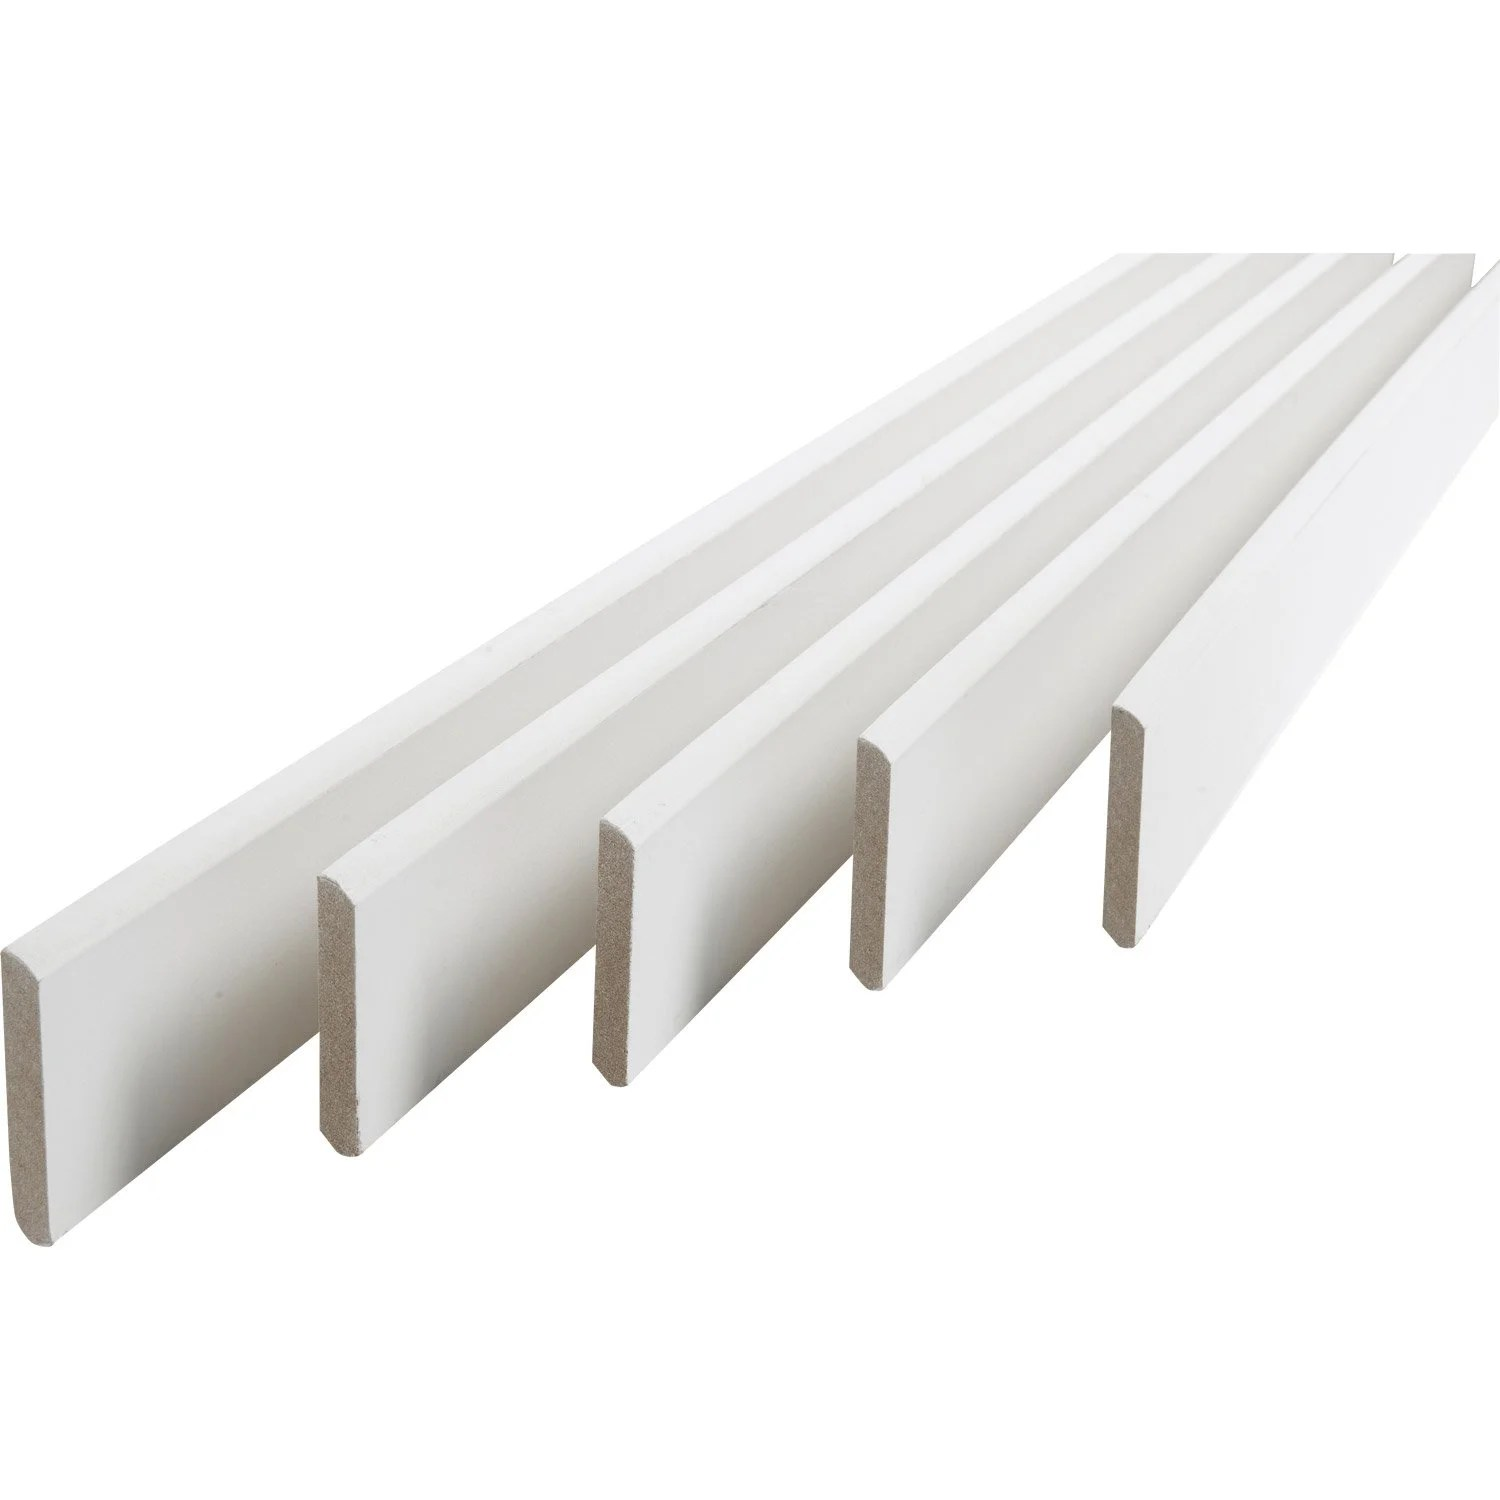 Salon De Jardin En Aluminium Leroy Merlin Lot De 5 Plinthes Médium (mdf) Arrondies Peint Blanc, 9 X